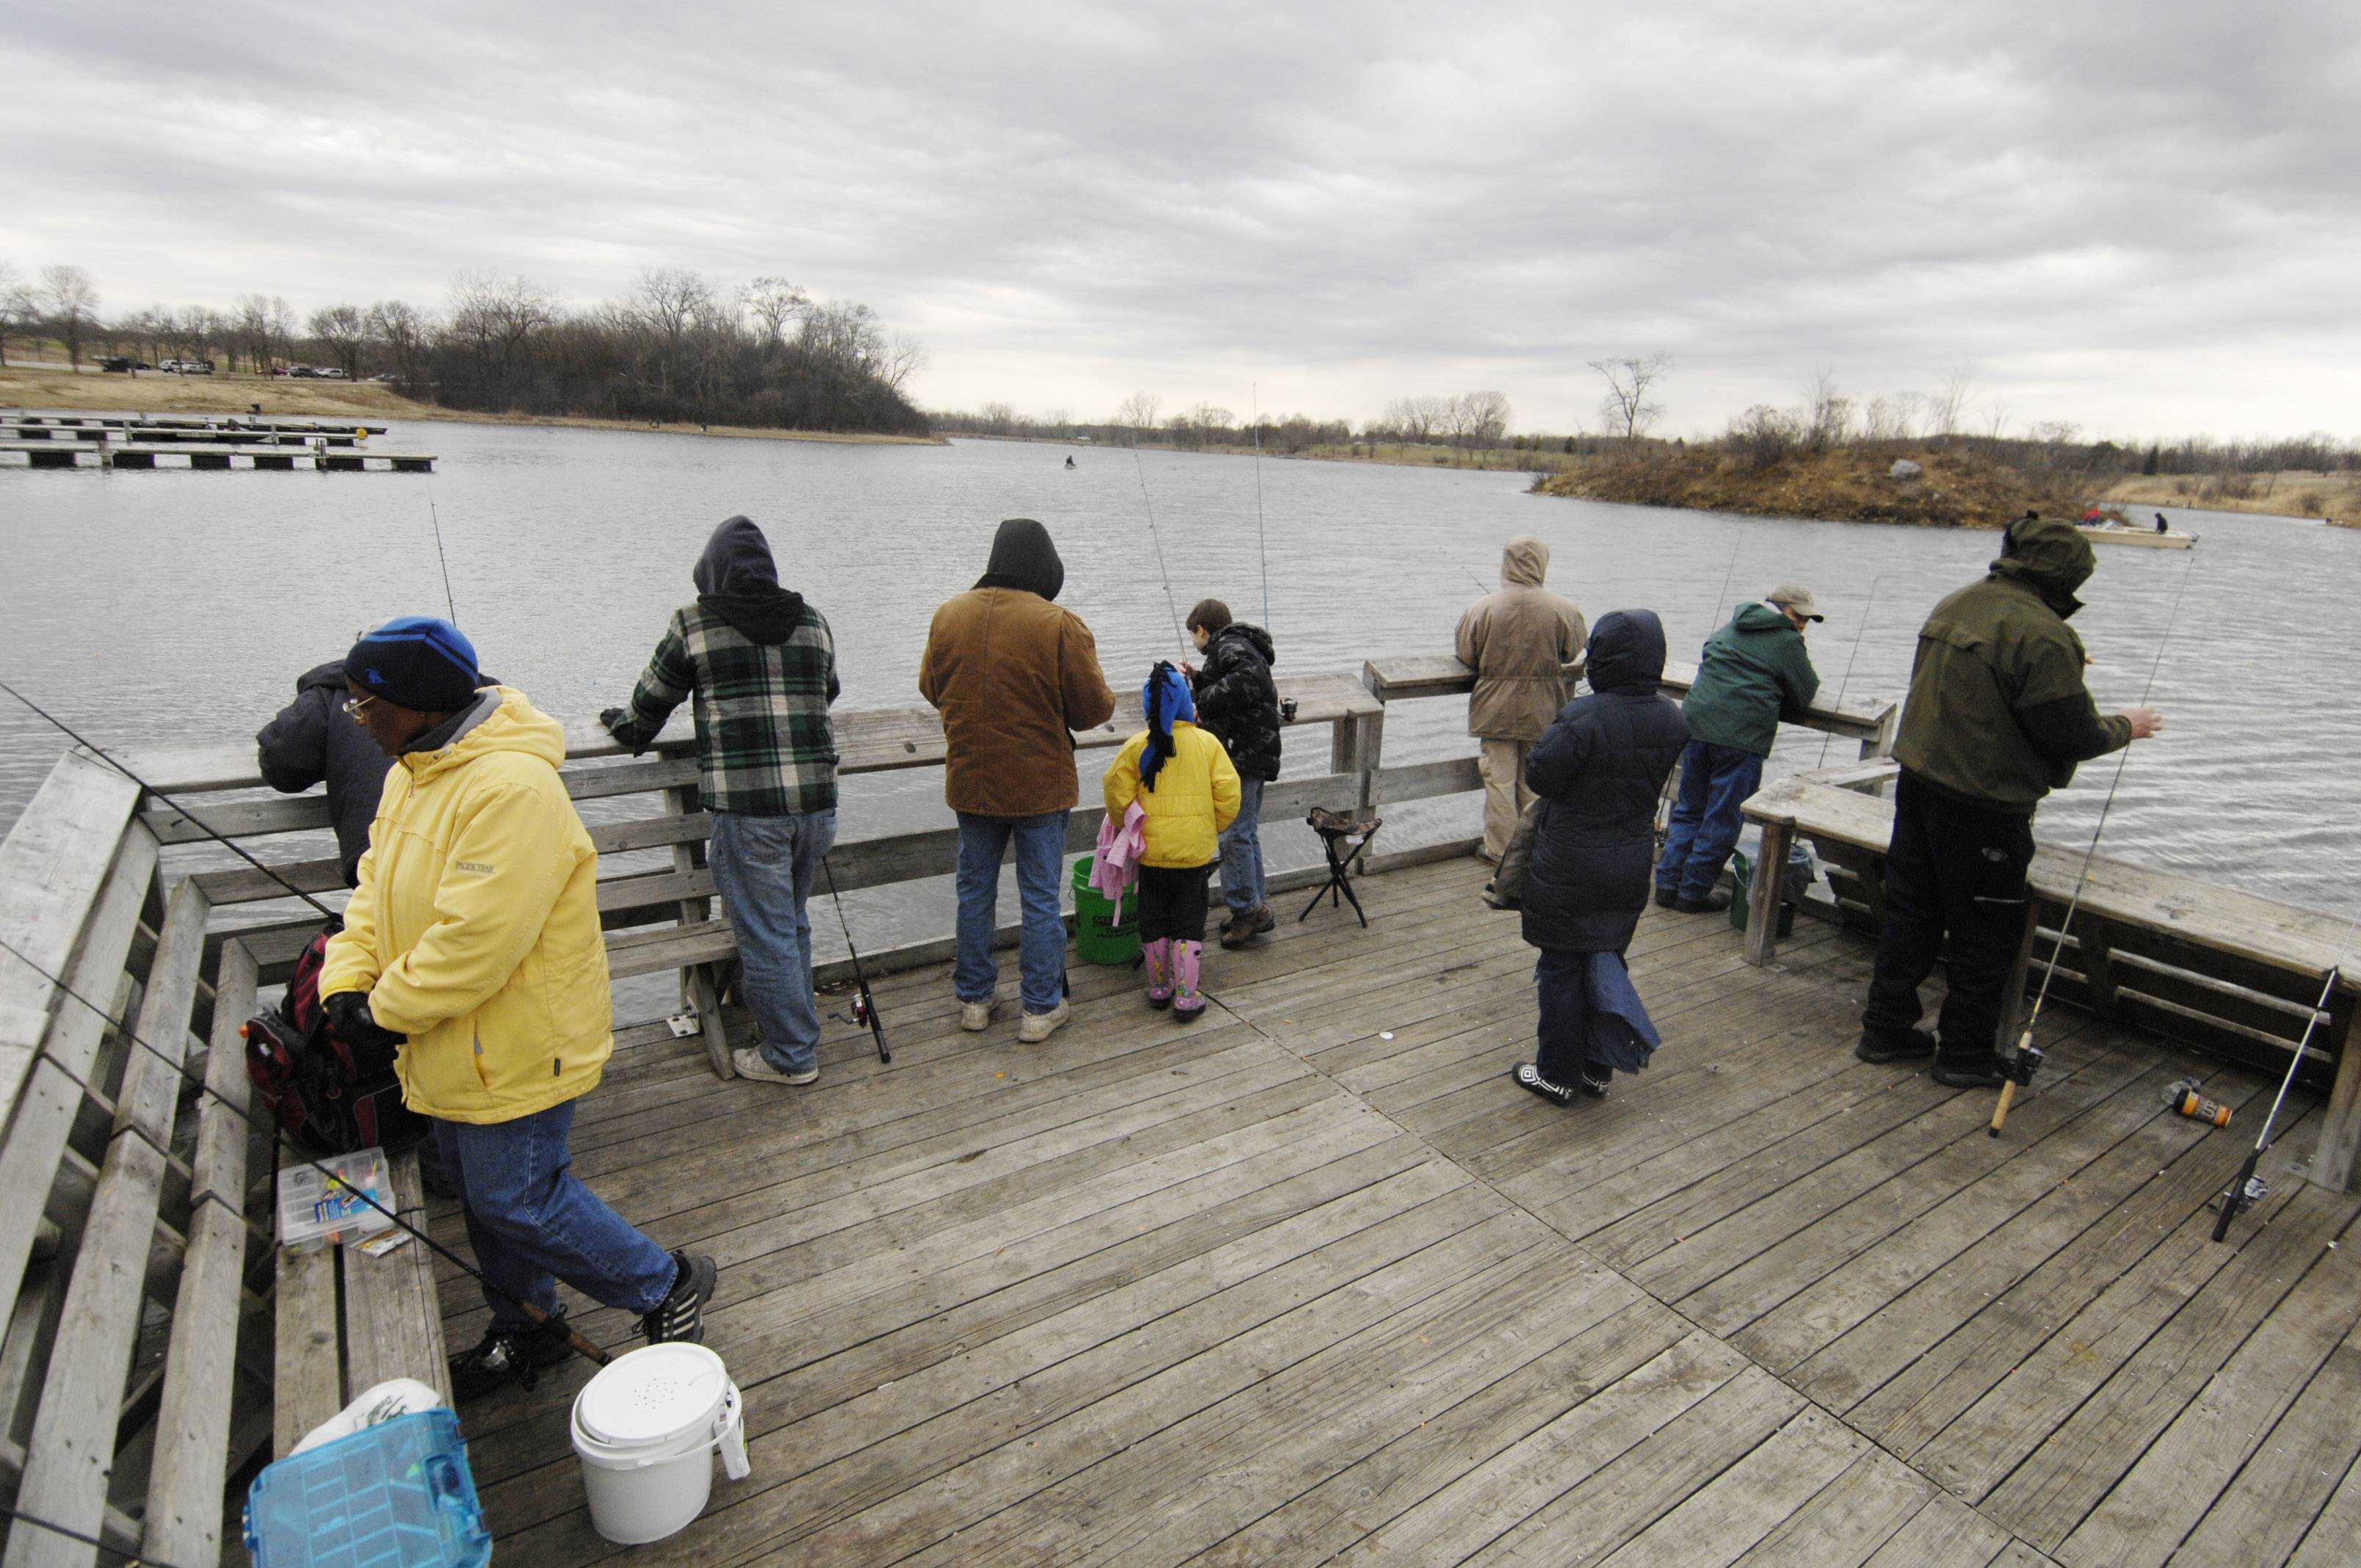 Rainbow trout season opens at 6 a.m. April 5 at three DuPage County forest preserves.